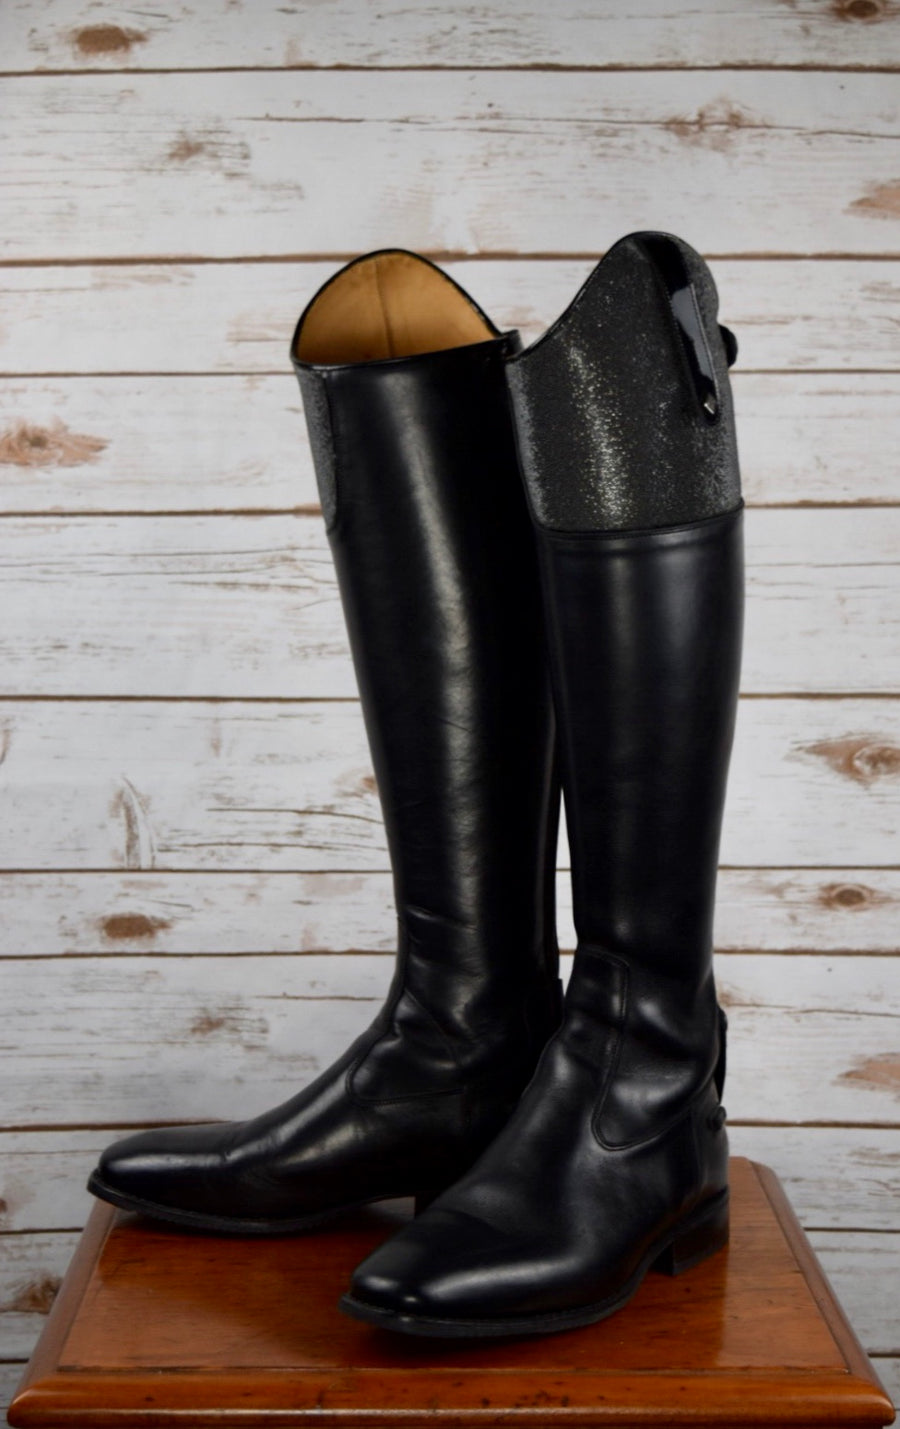 DeNiro S3501 Custom Micro Crystal Top Dress Boots in Black - Front View 3